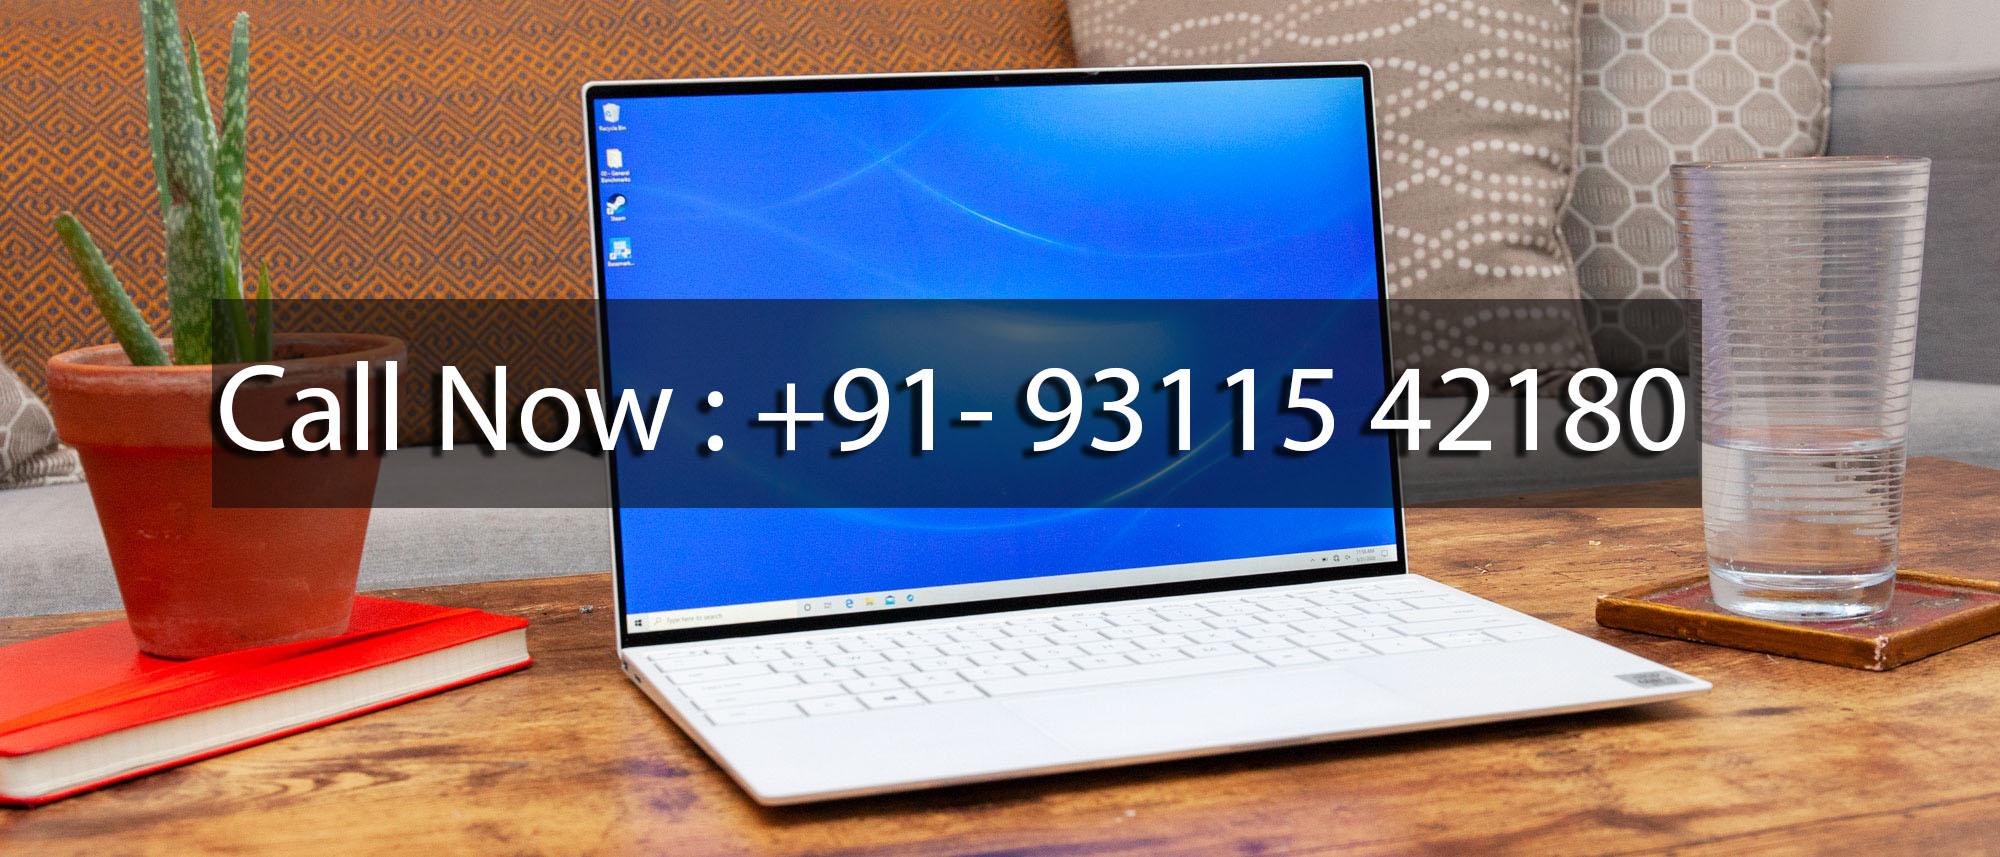 Dell Service Center in Husainabad in Lucknow